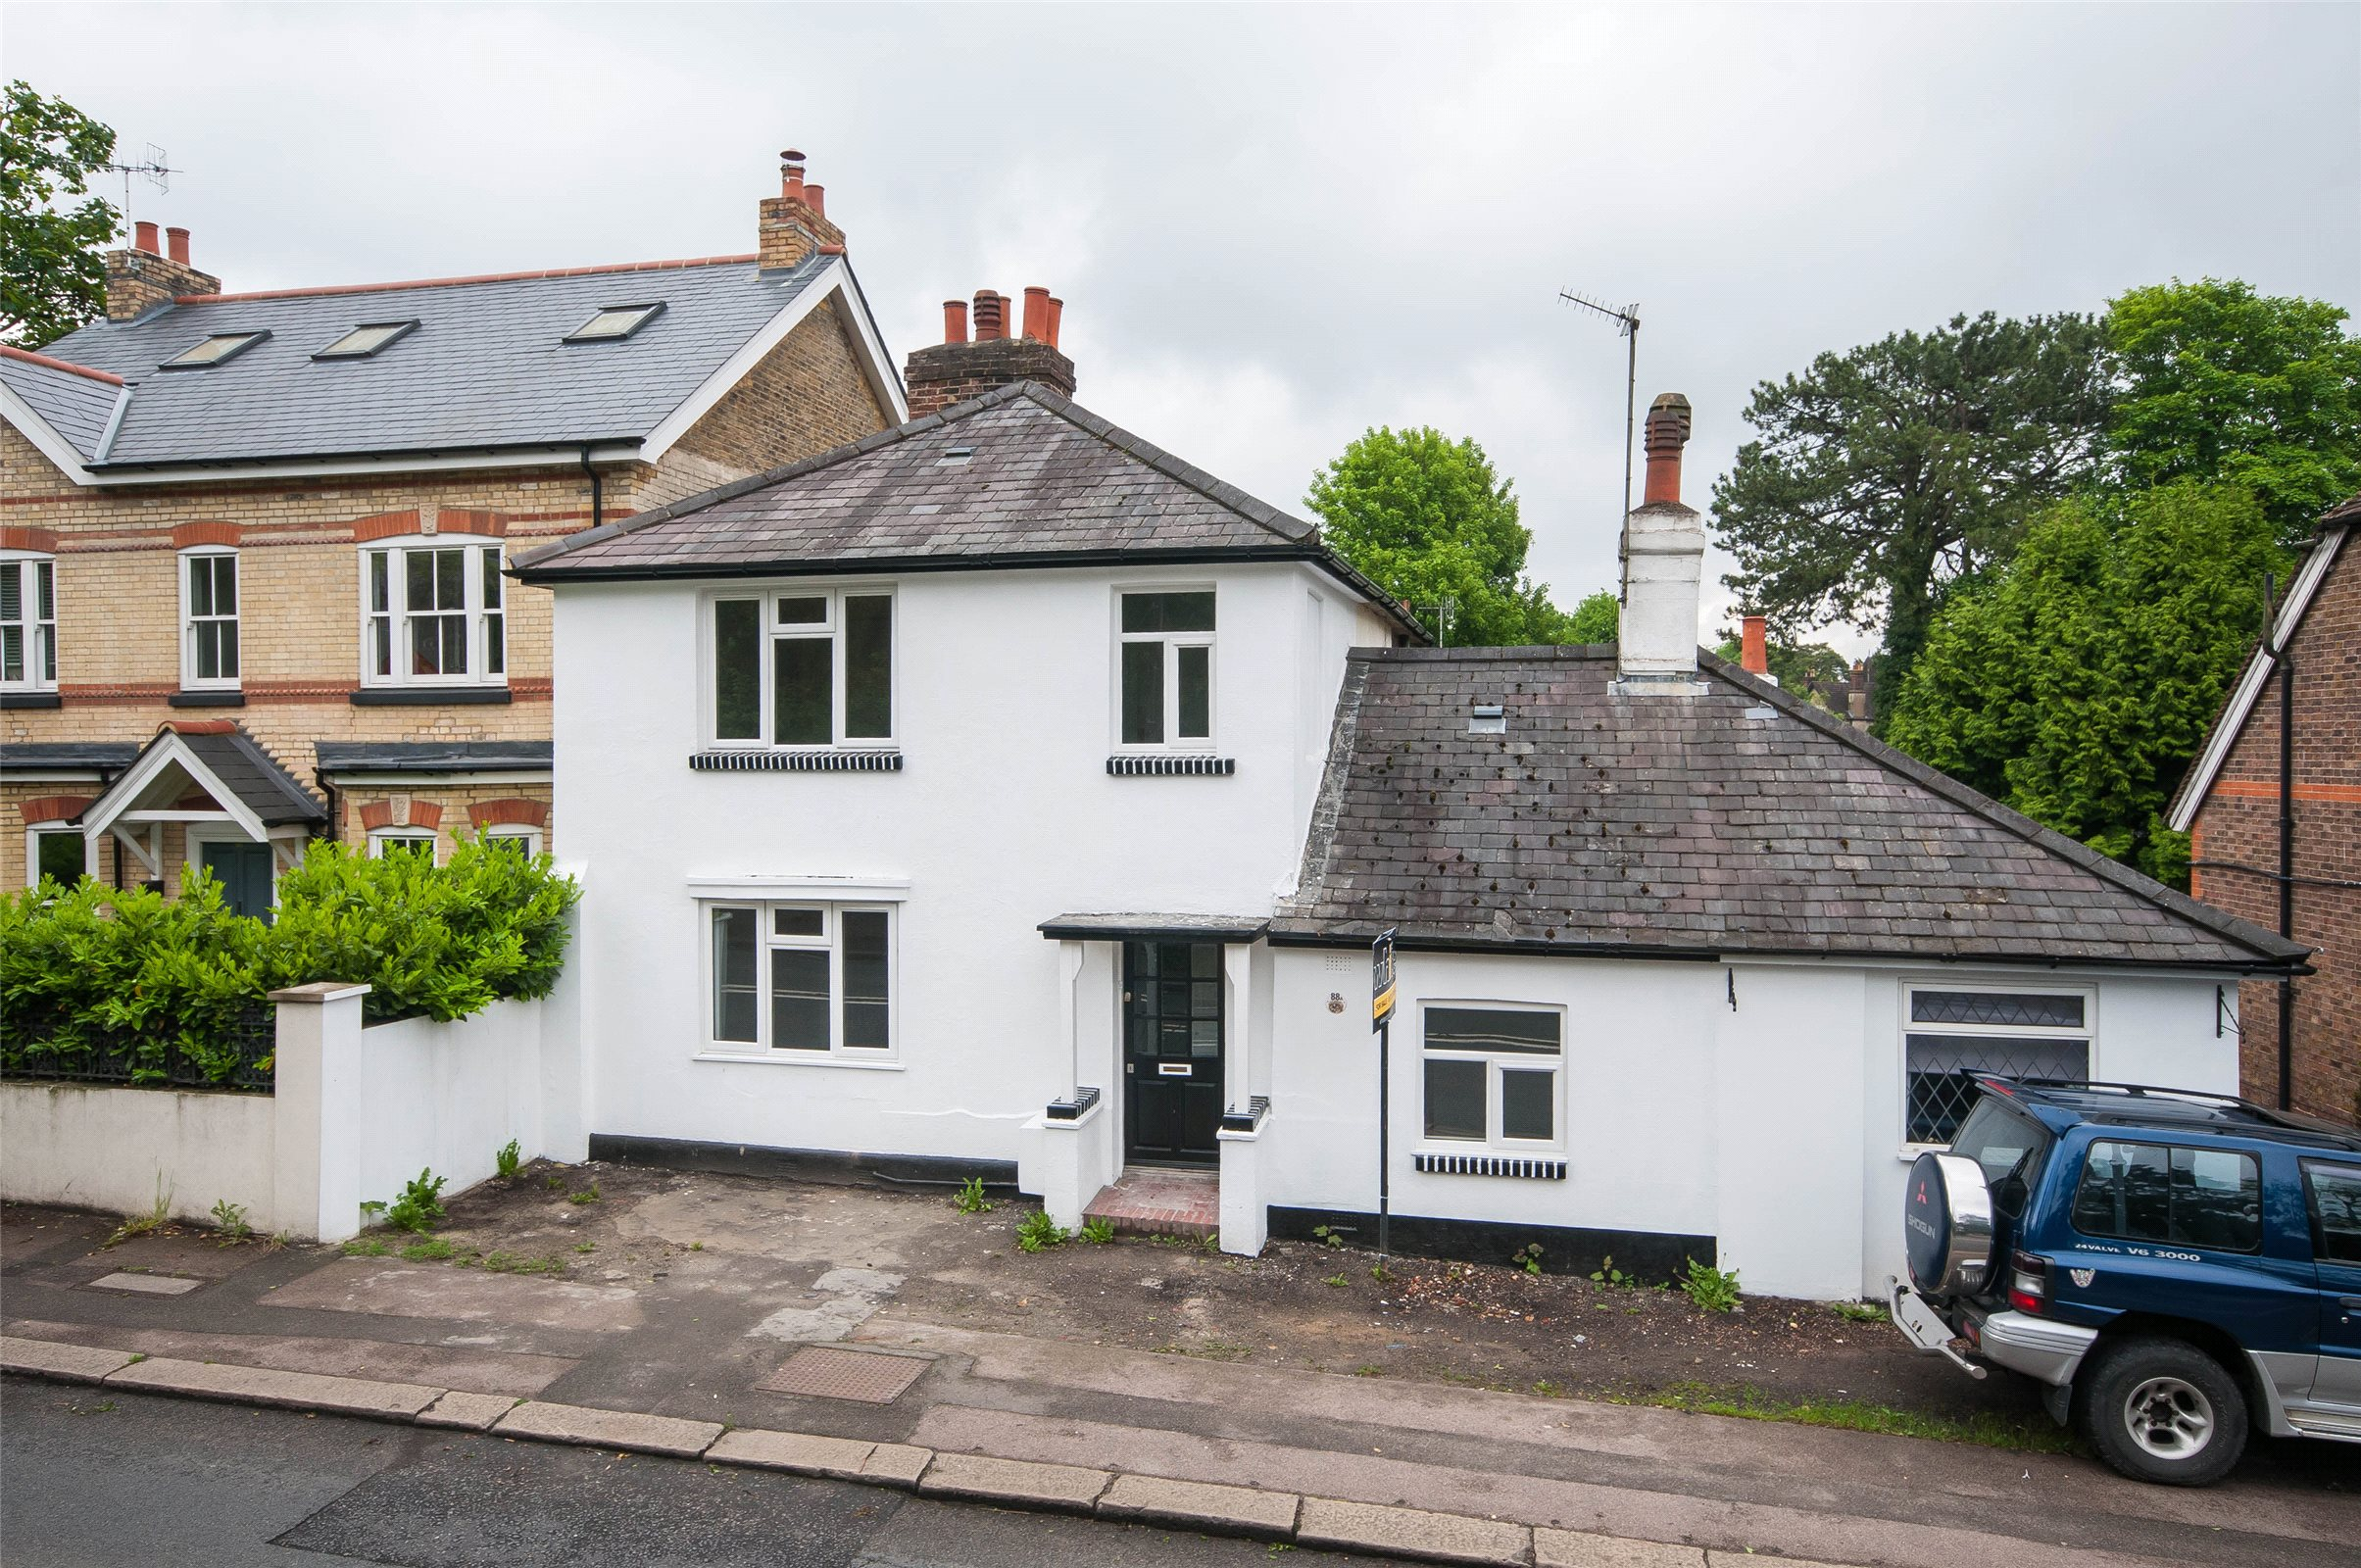 3 Bedrooms Semi Detached House for sale in Reigate Hill, Reigate, Surrey, RH2